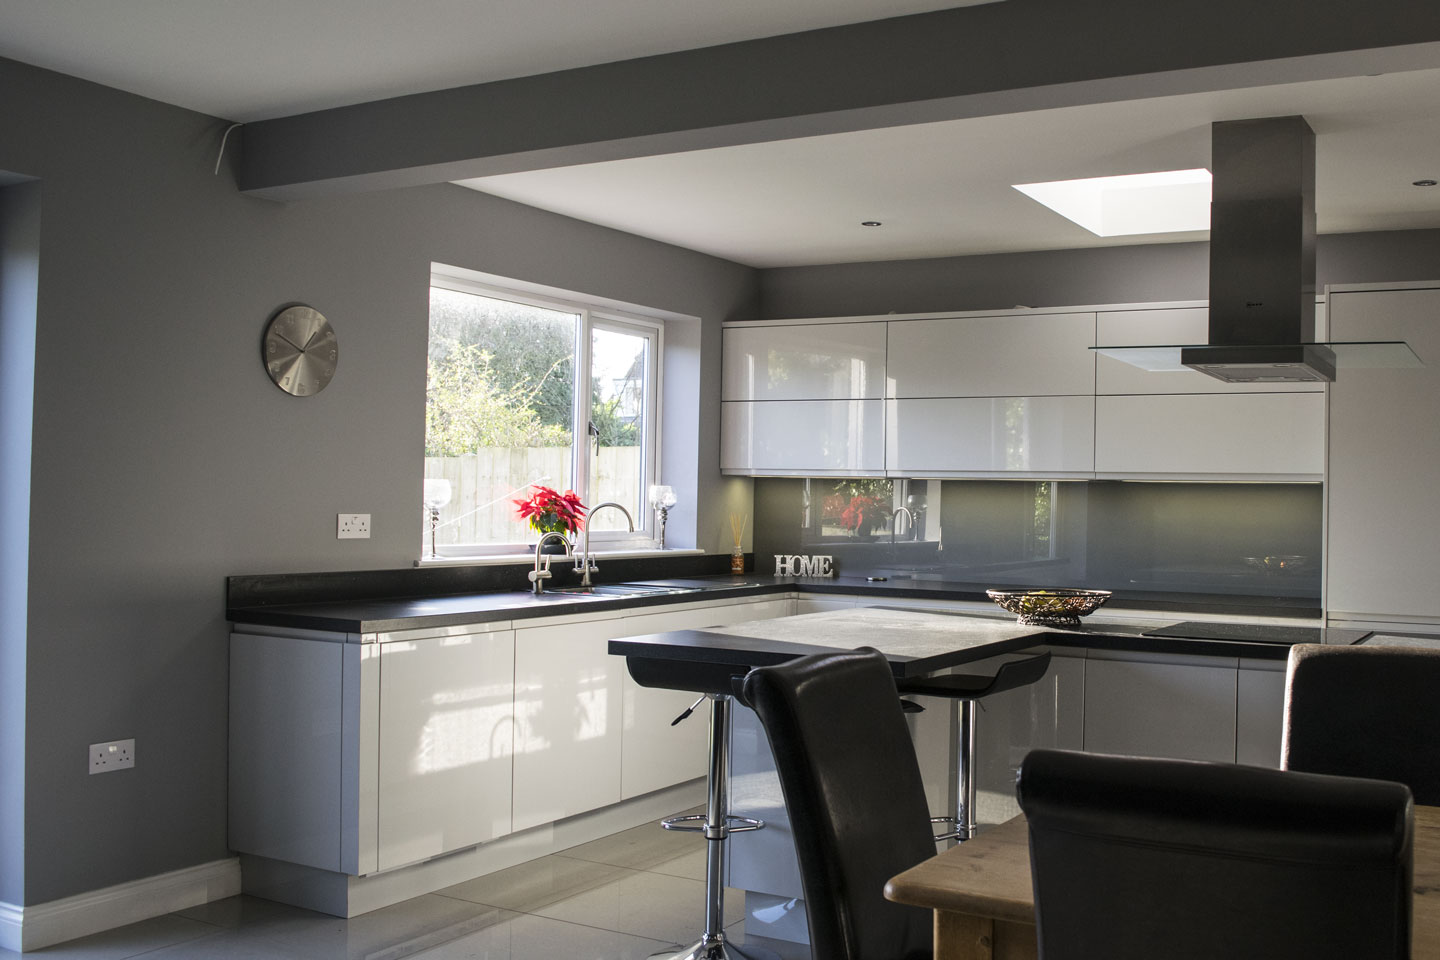 Finished plastering in painted modern kitchen.